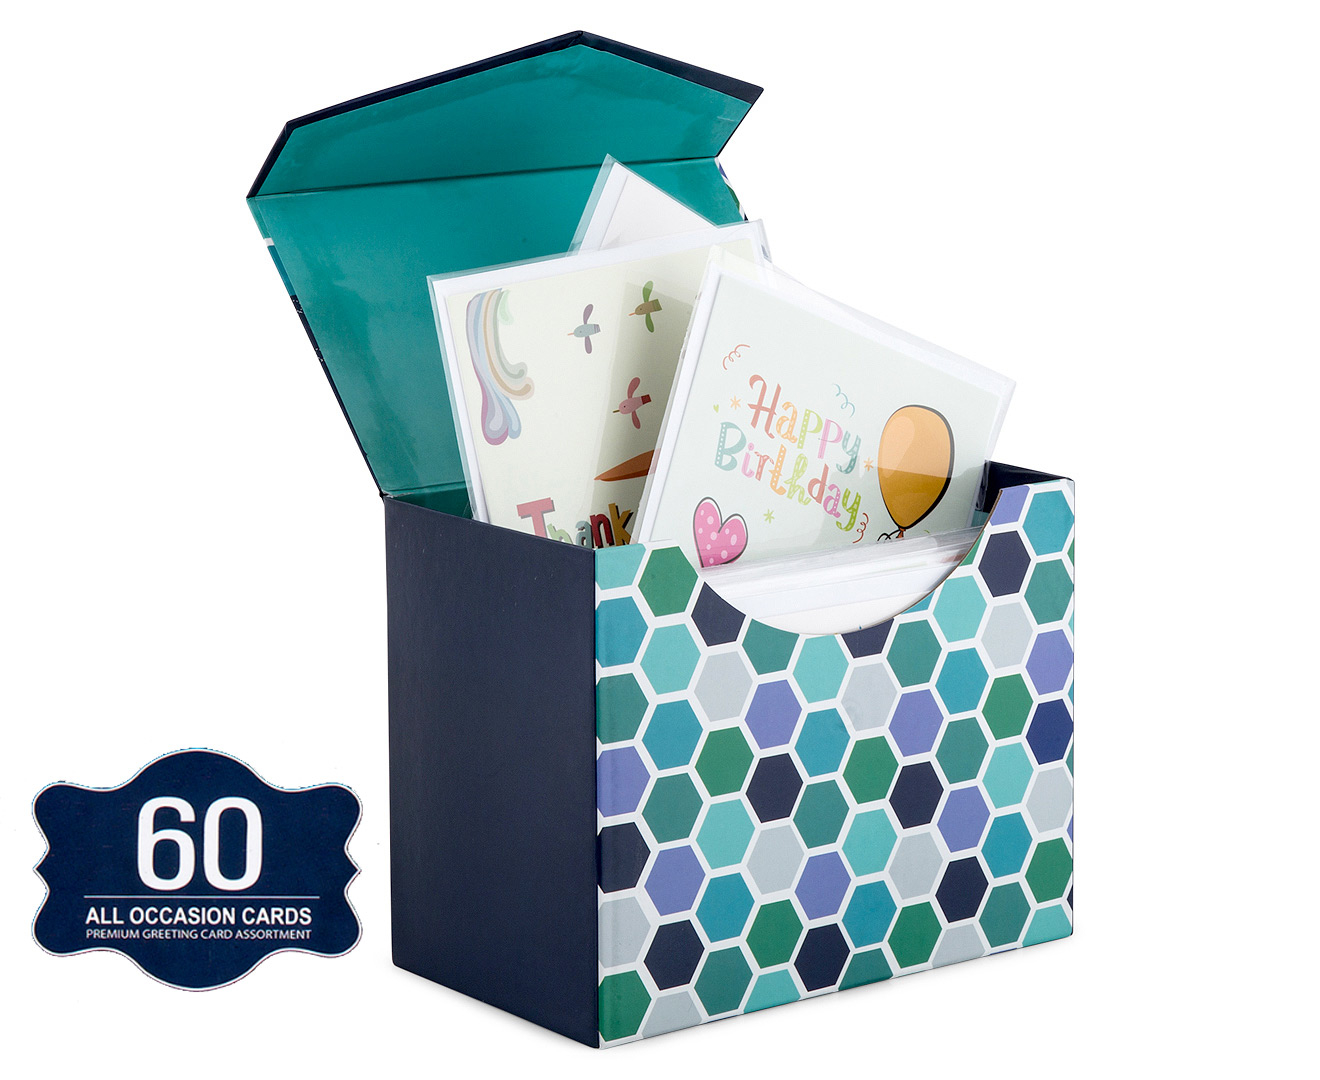 All Occasion Greeting Cards 60 Pack 20 Designs 9345916050017 Ebay